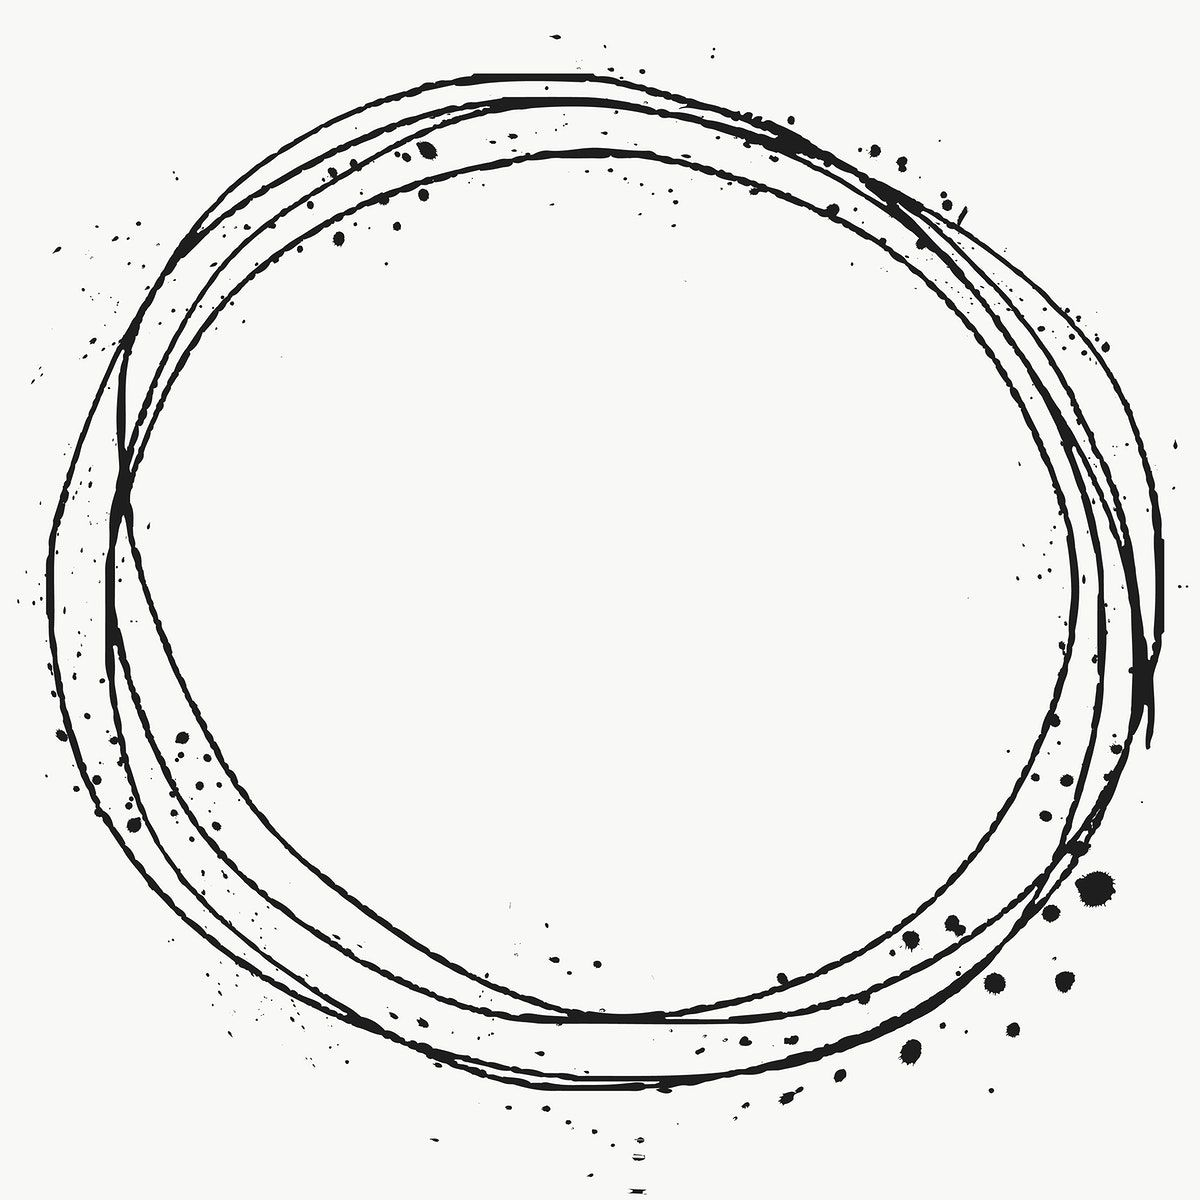 Filled Circle Scribble Icon Ad Spon Affiliate Circle Scribble Icon Filled Circle Scribble Icon